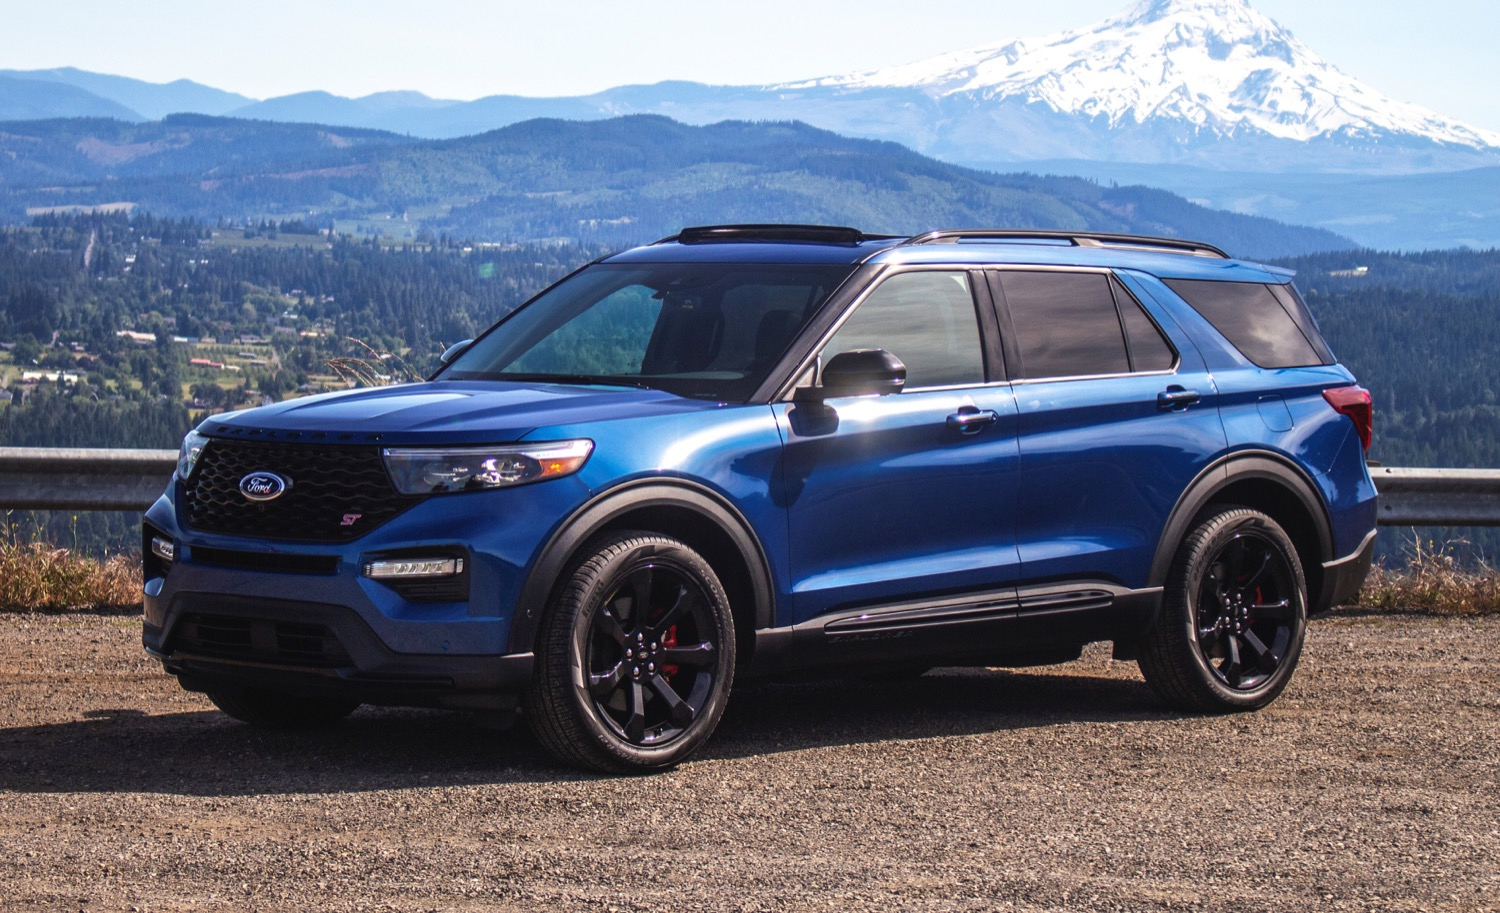 2021 Ford Explorer Hybrid Electric Range, Colors, Release